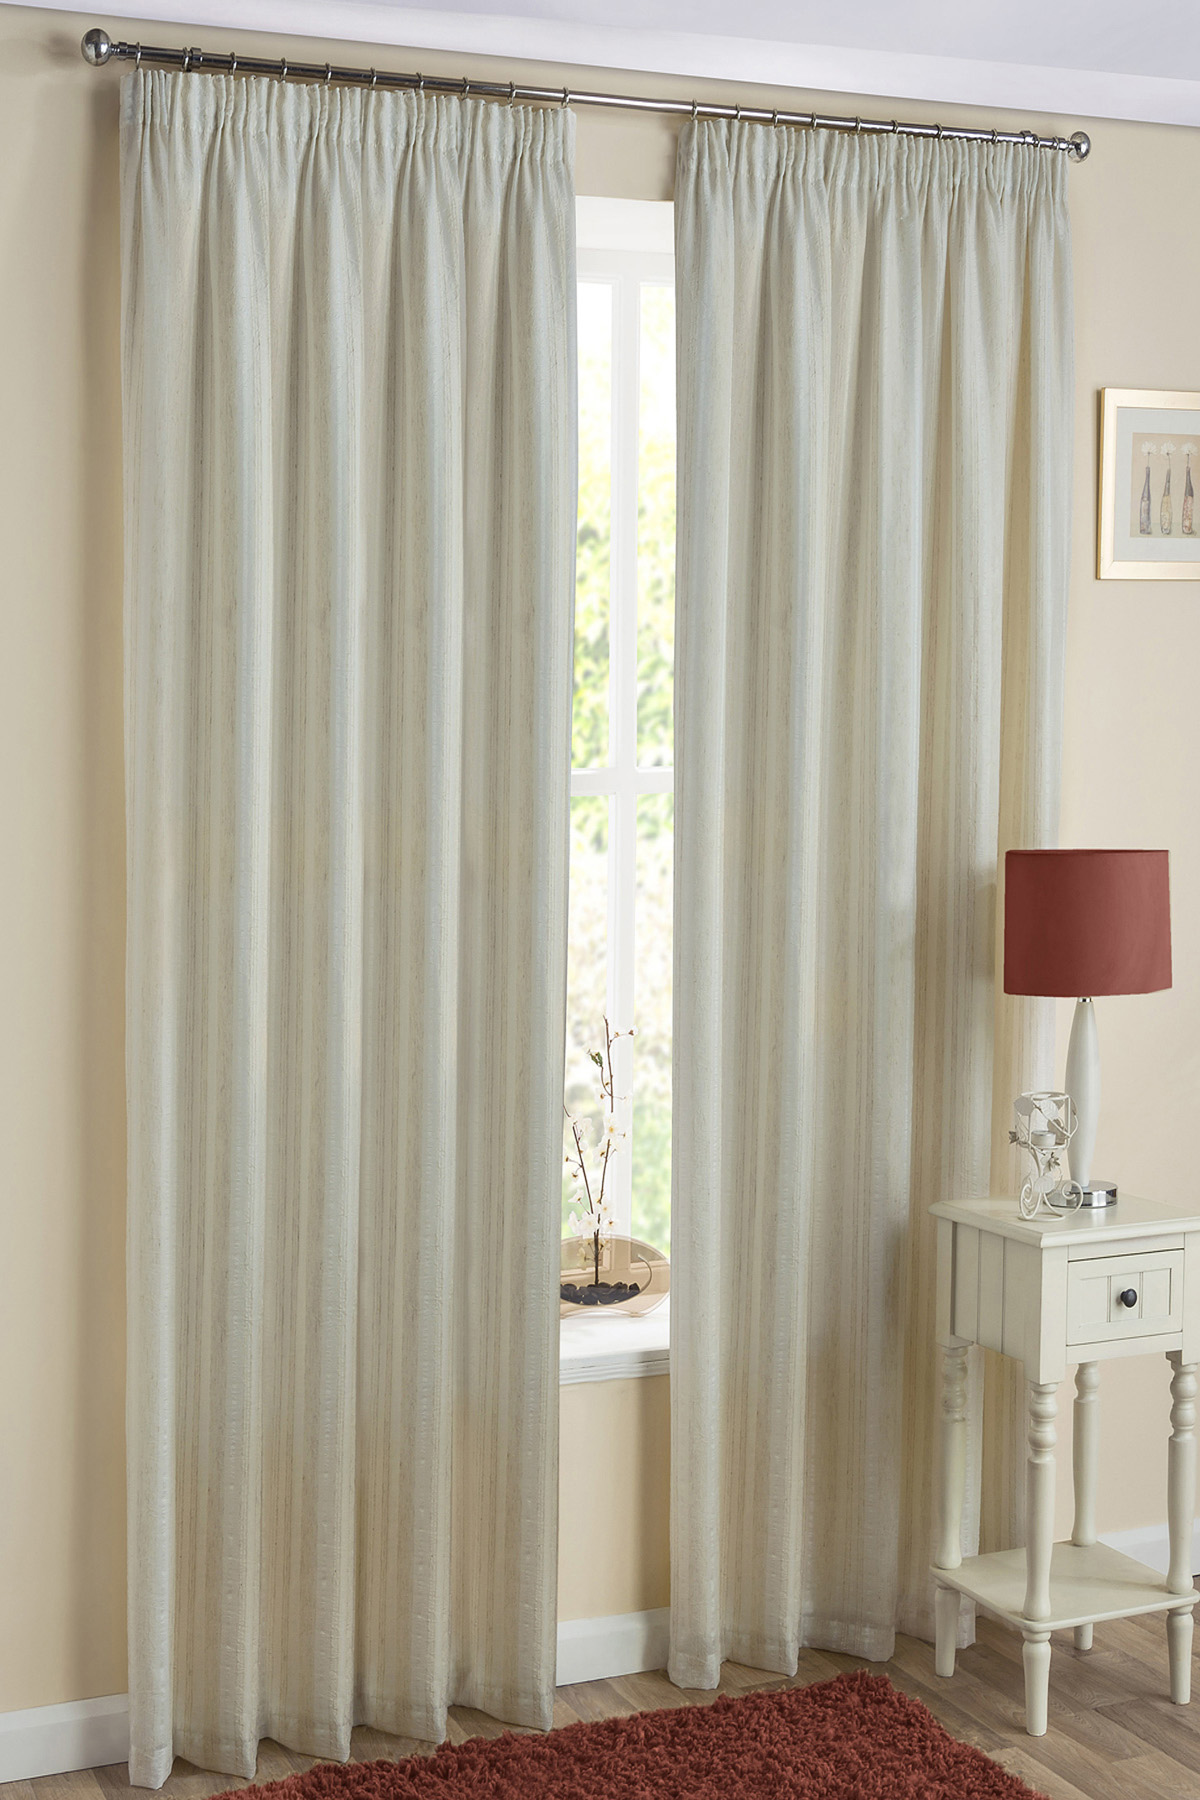 Natural Monaco Readymade Lined Voile Curtains